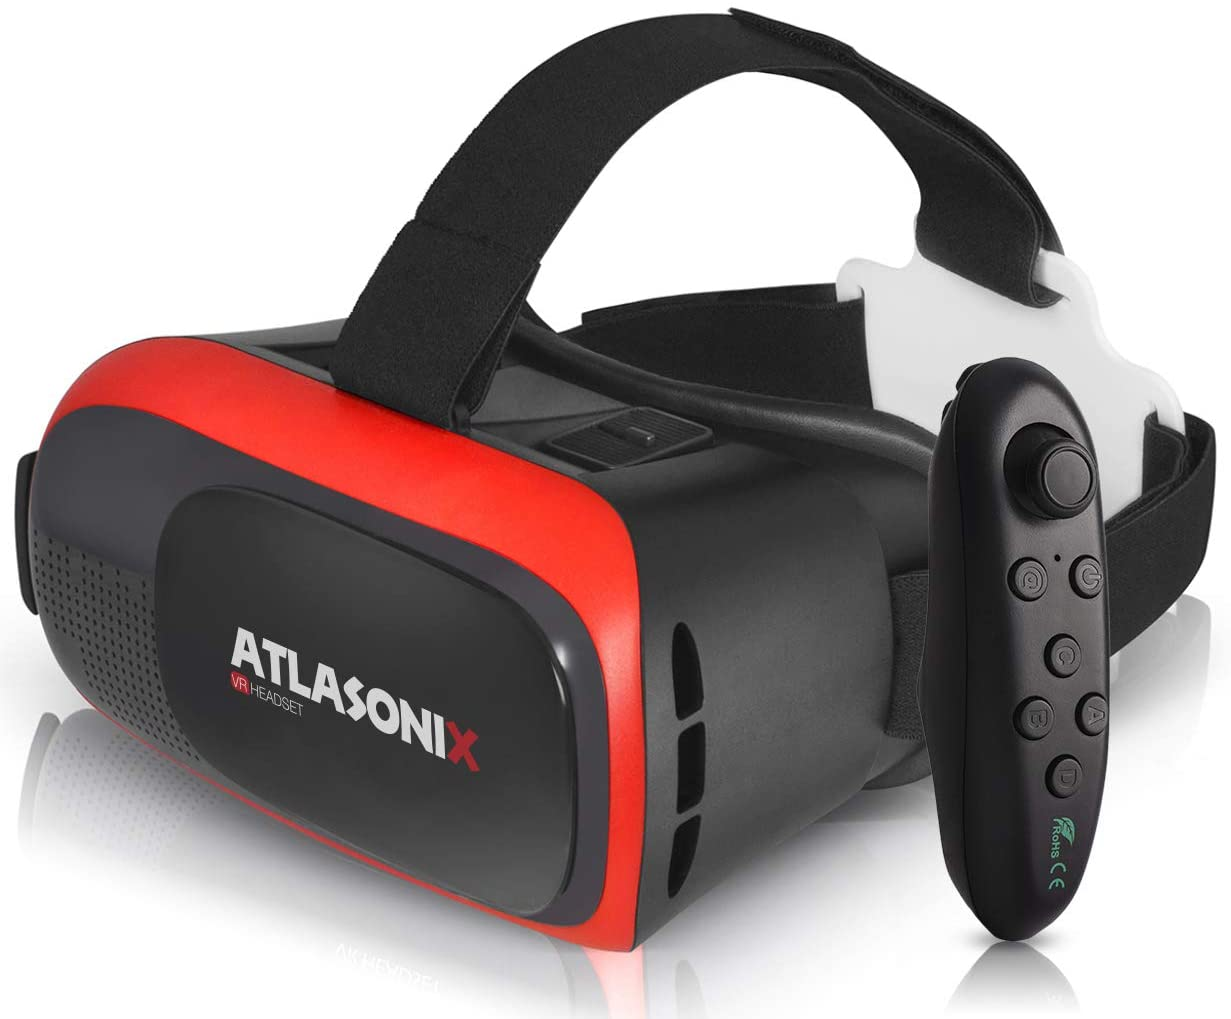 Atlasonix VR Headset (Compatible with iPhone)